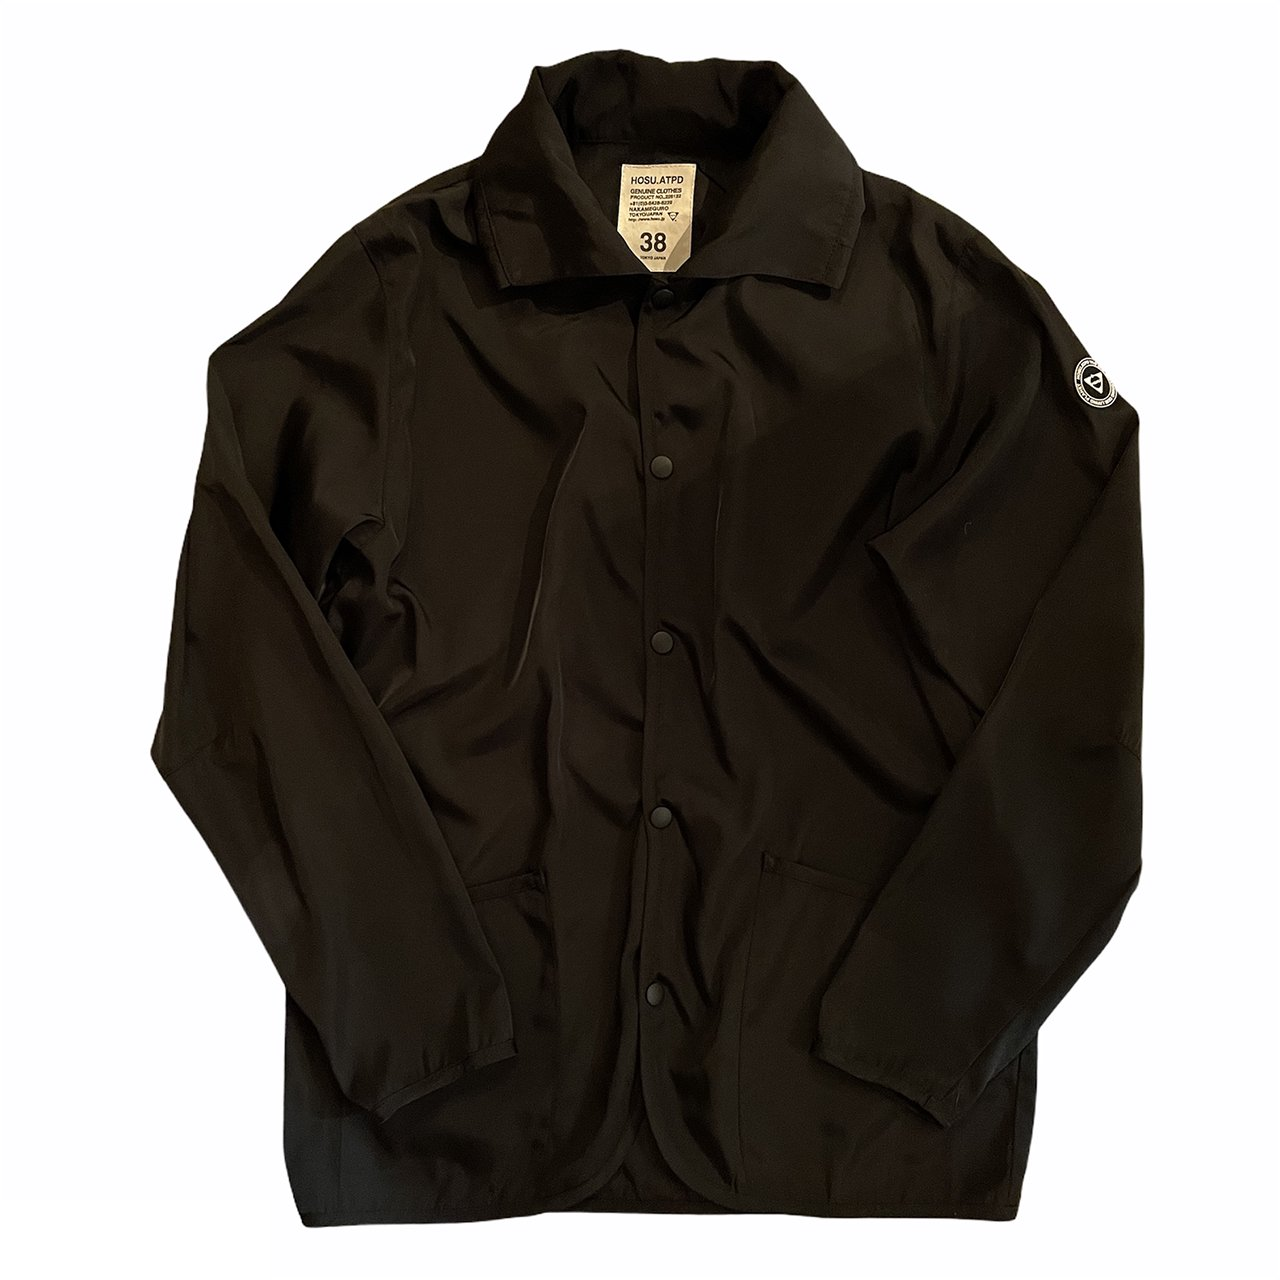 HOSU ORIGINAL COACH JACKET/BLACK